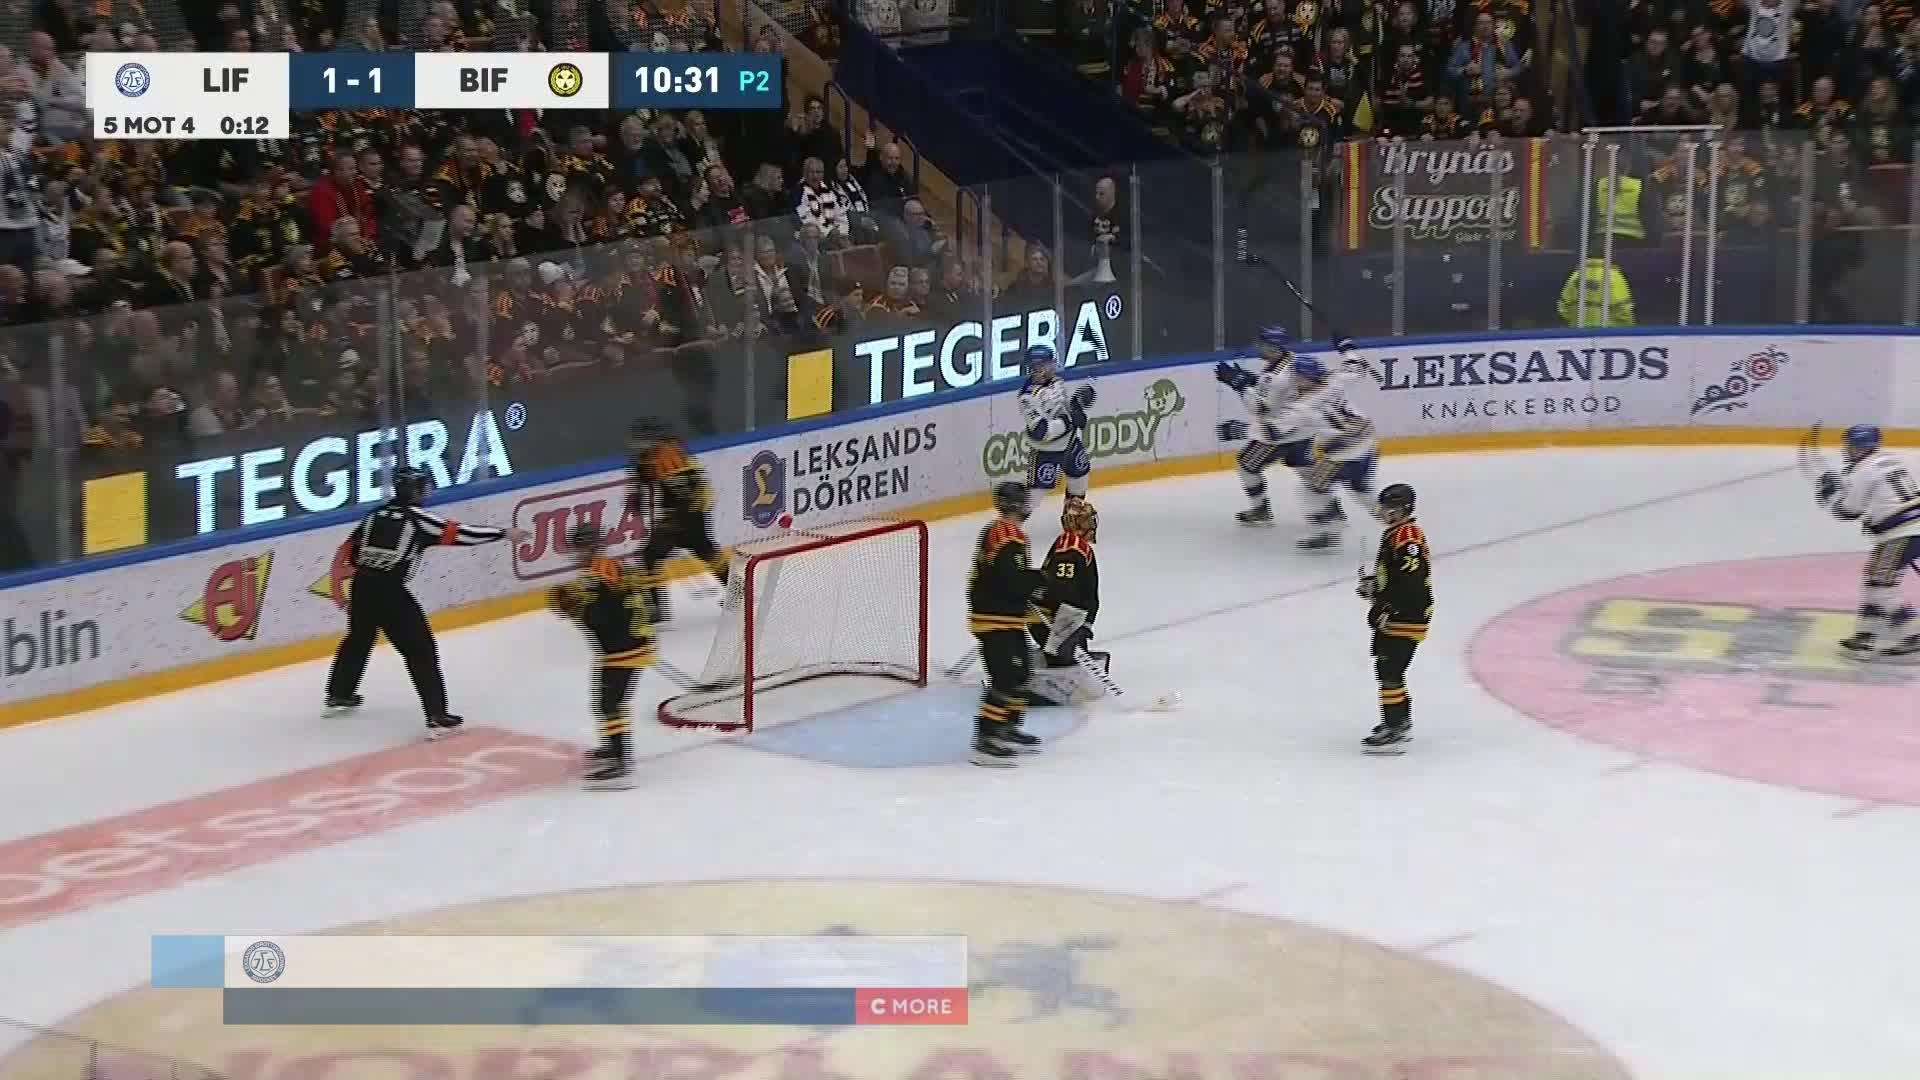 Leksands IF - Brynäs IF 2-1